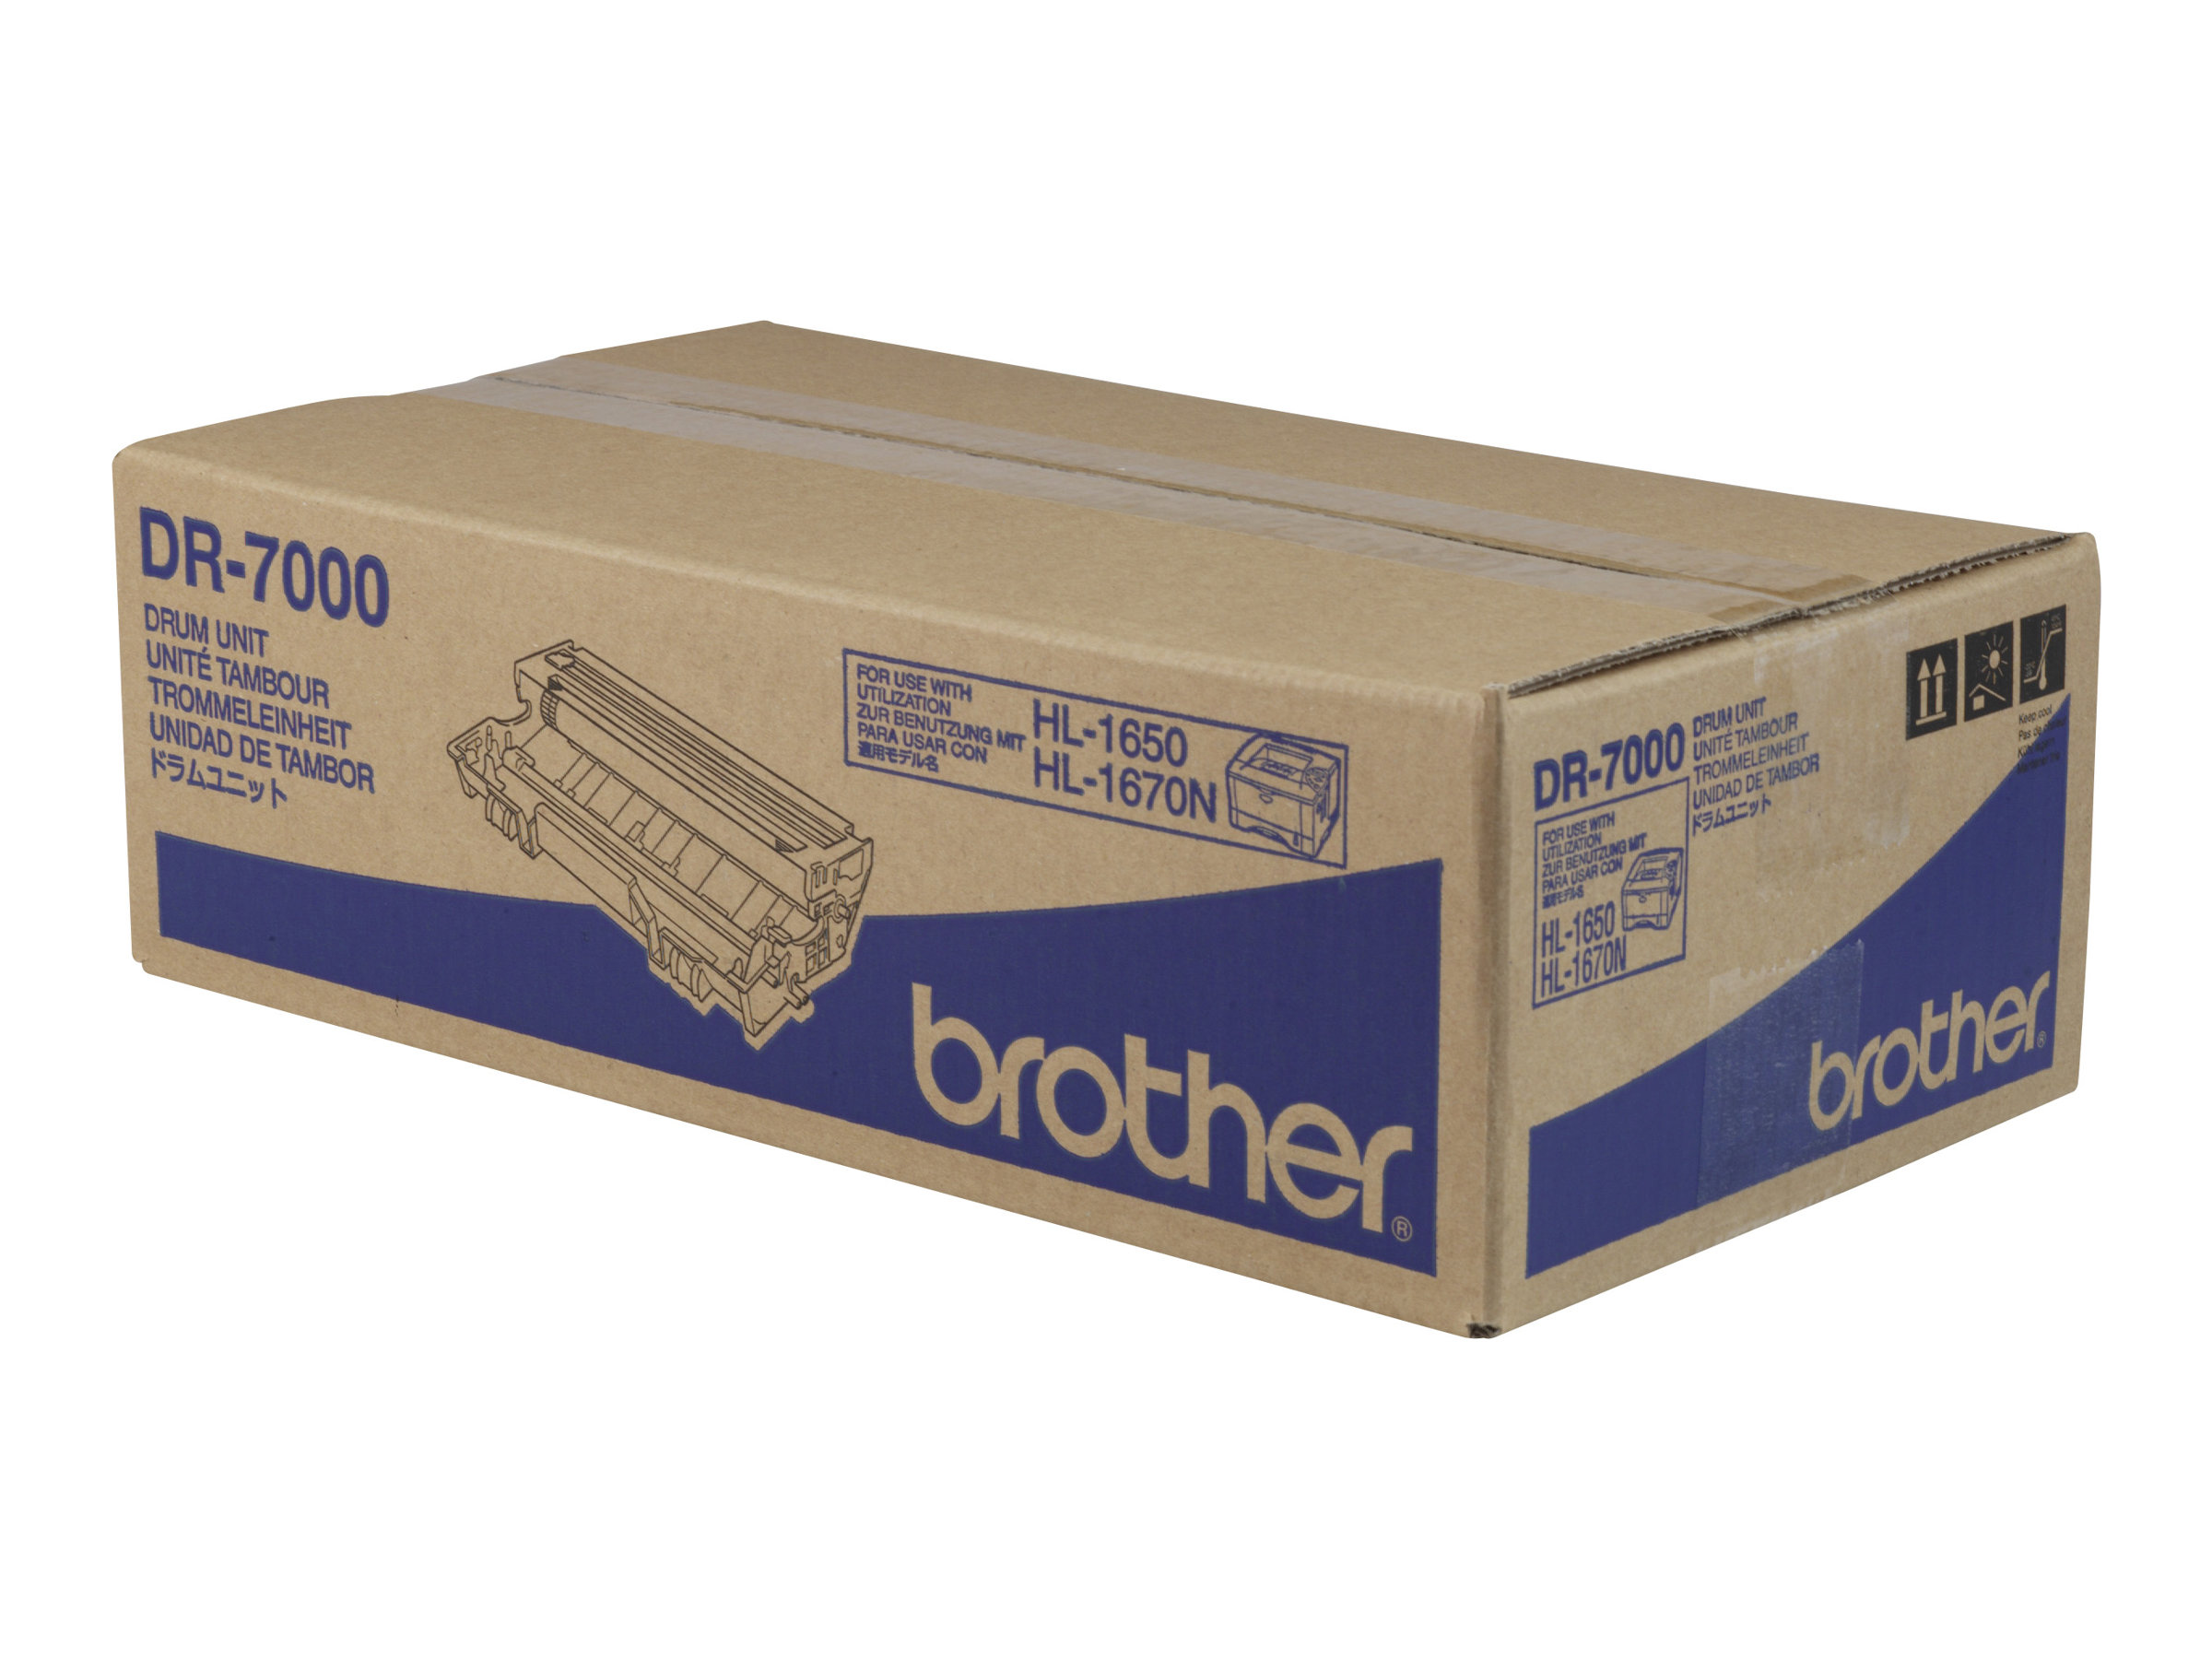 Brother DR7000 - 1 - Schwarz - Trommel-Kit - für Brother DCP-8020, 8025, HL-1650, 1670, 1850, 1870, 5030, 5040, 5050, 5070, MFC-8420, 8820